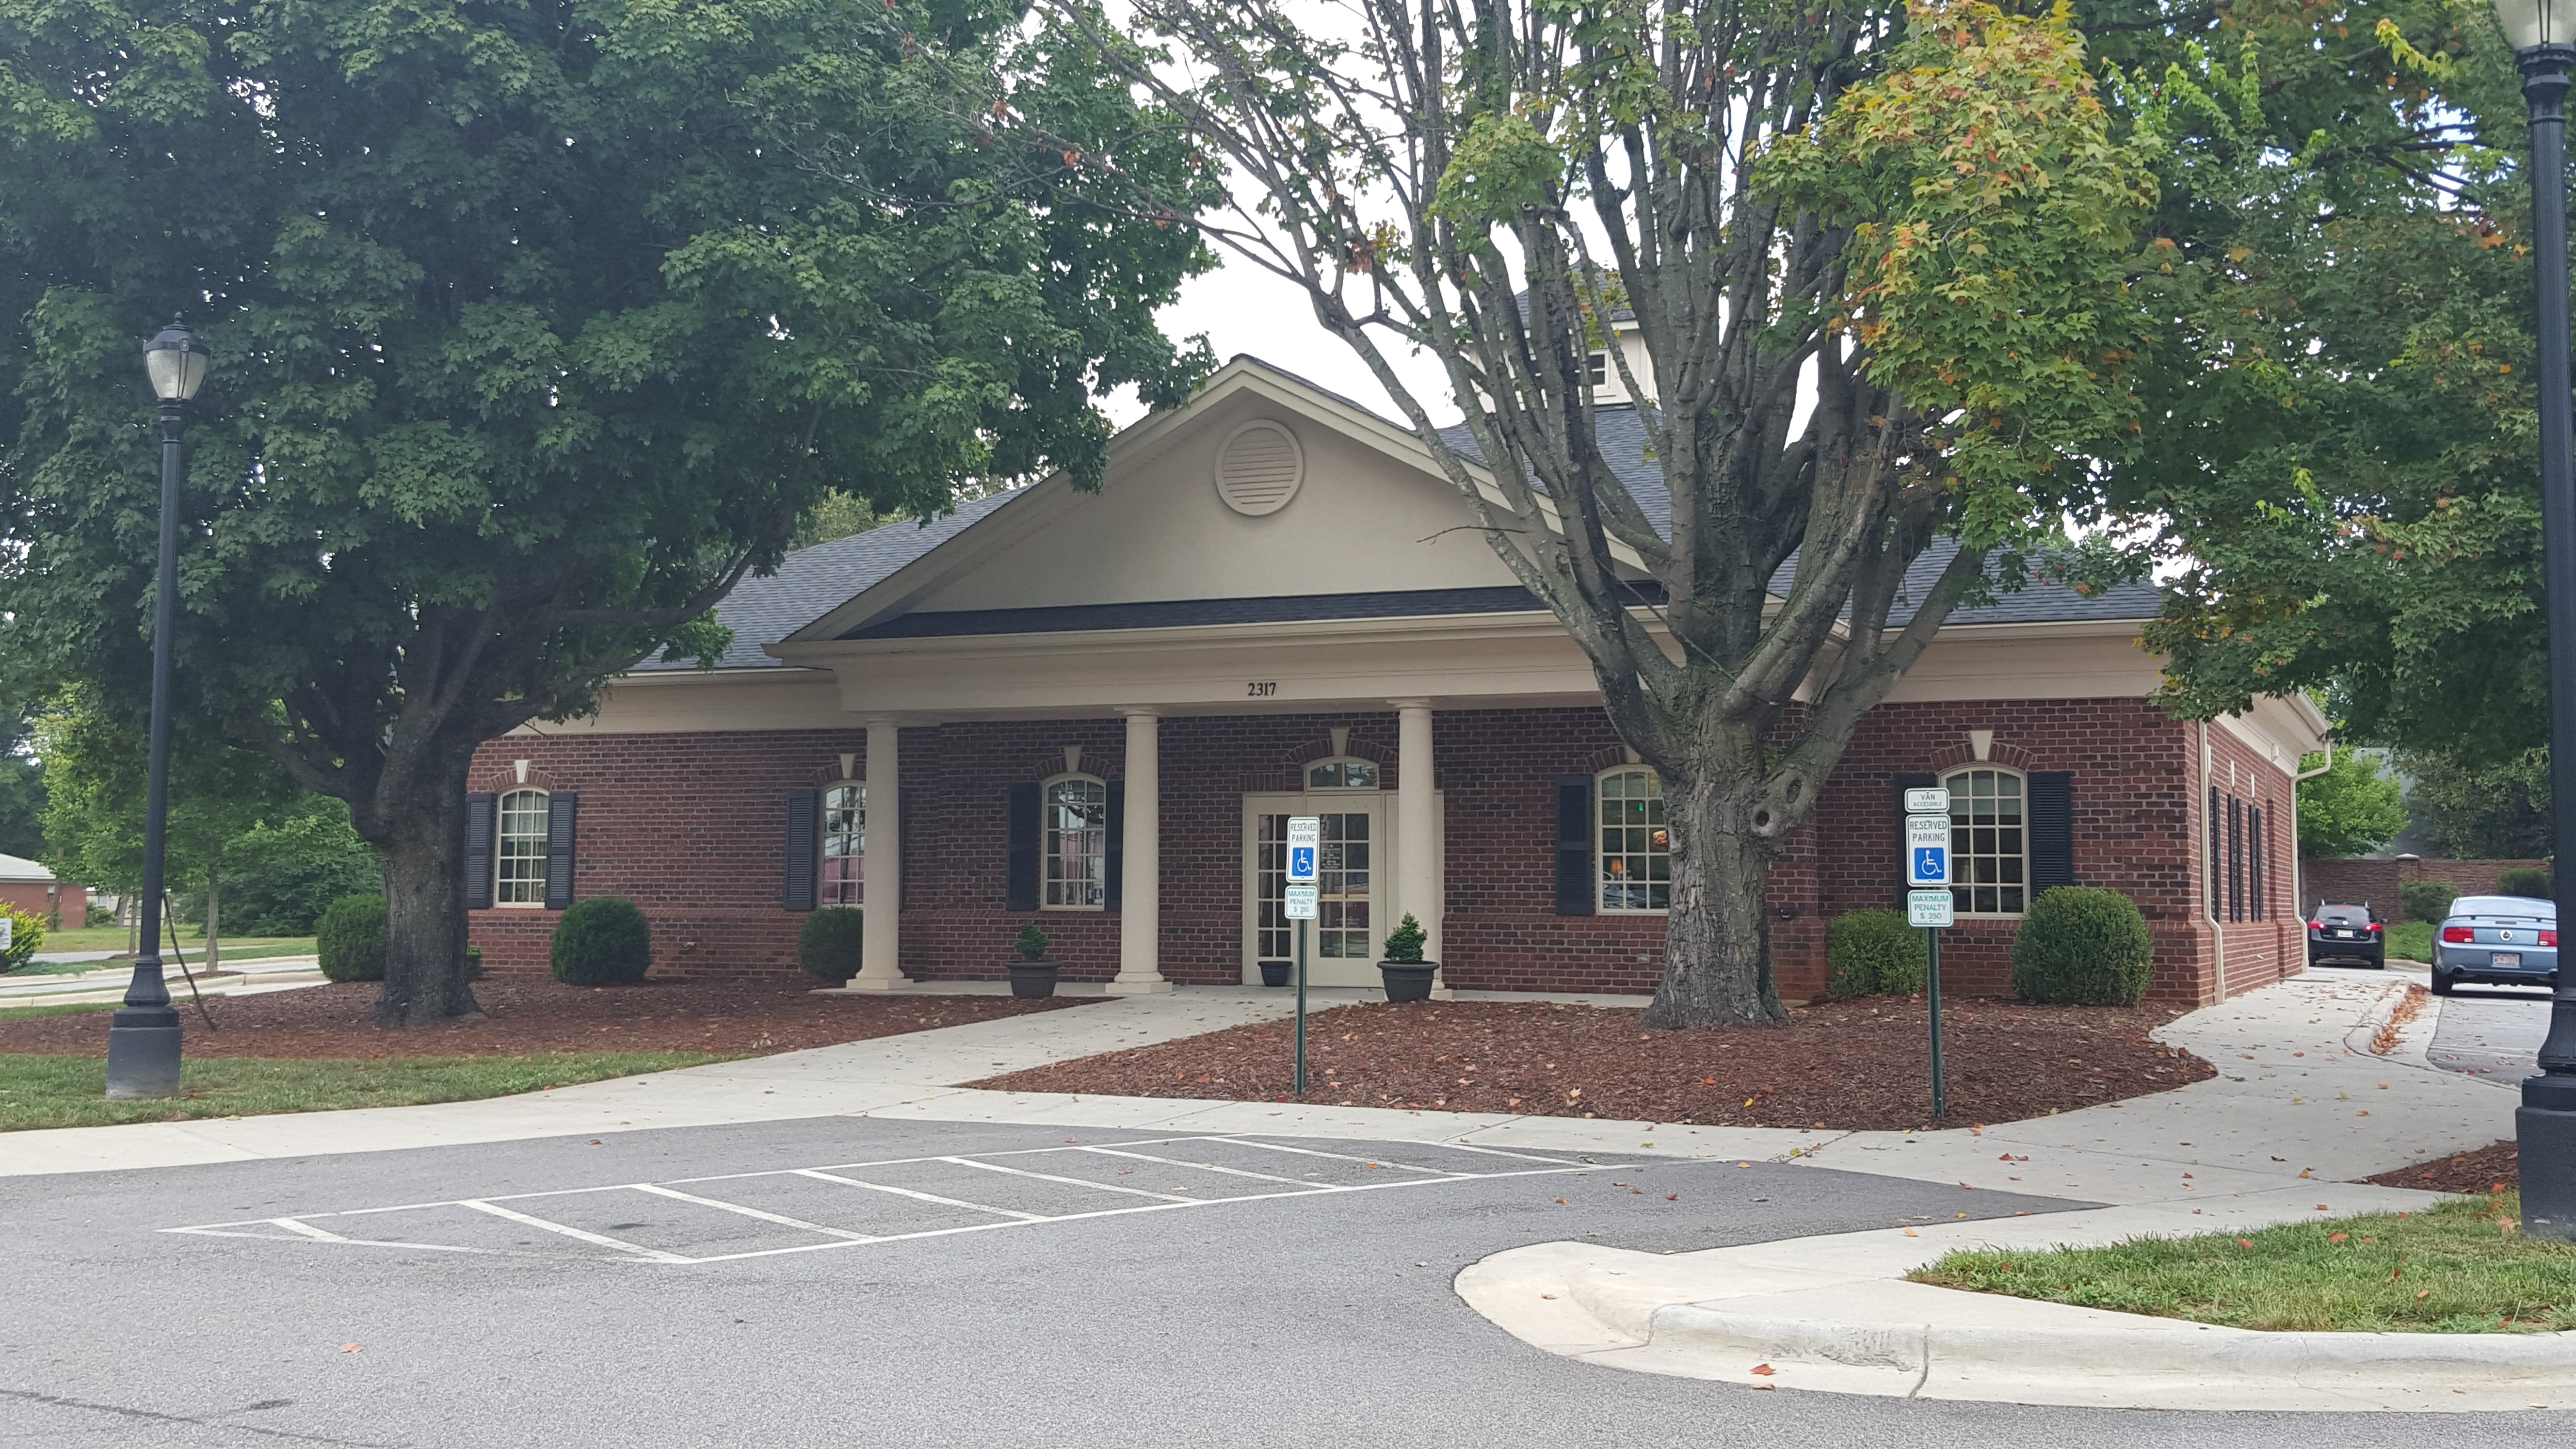 Picture of Bank of Ozarks, Lincolnton, North Carolina